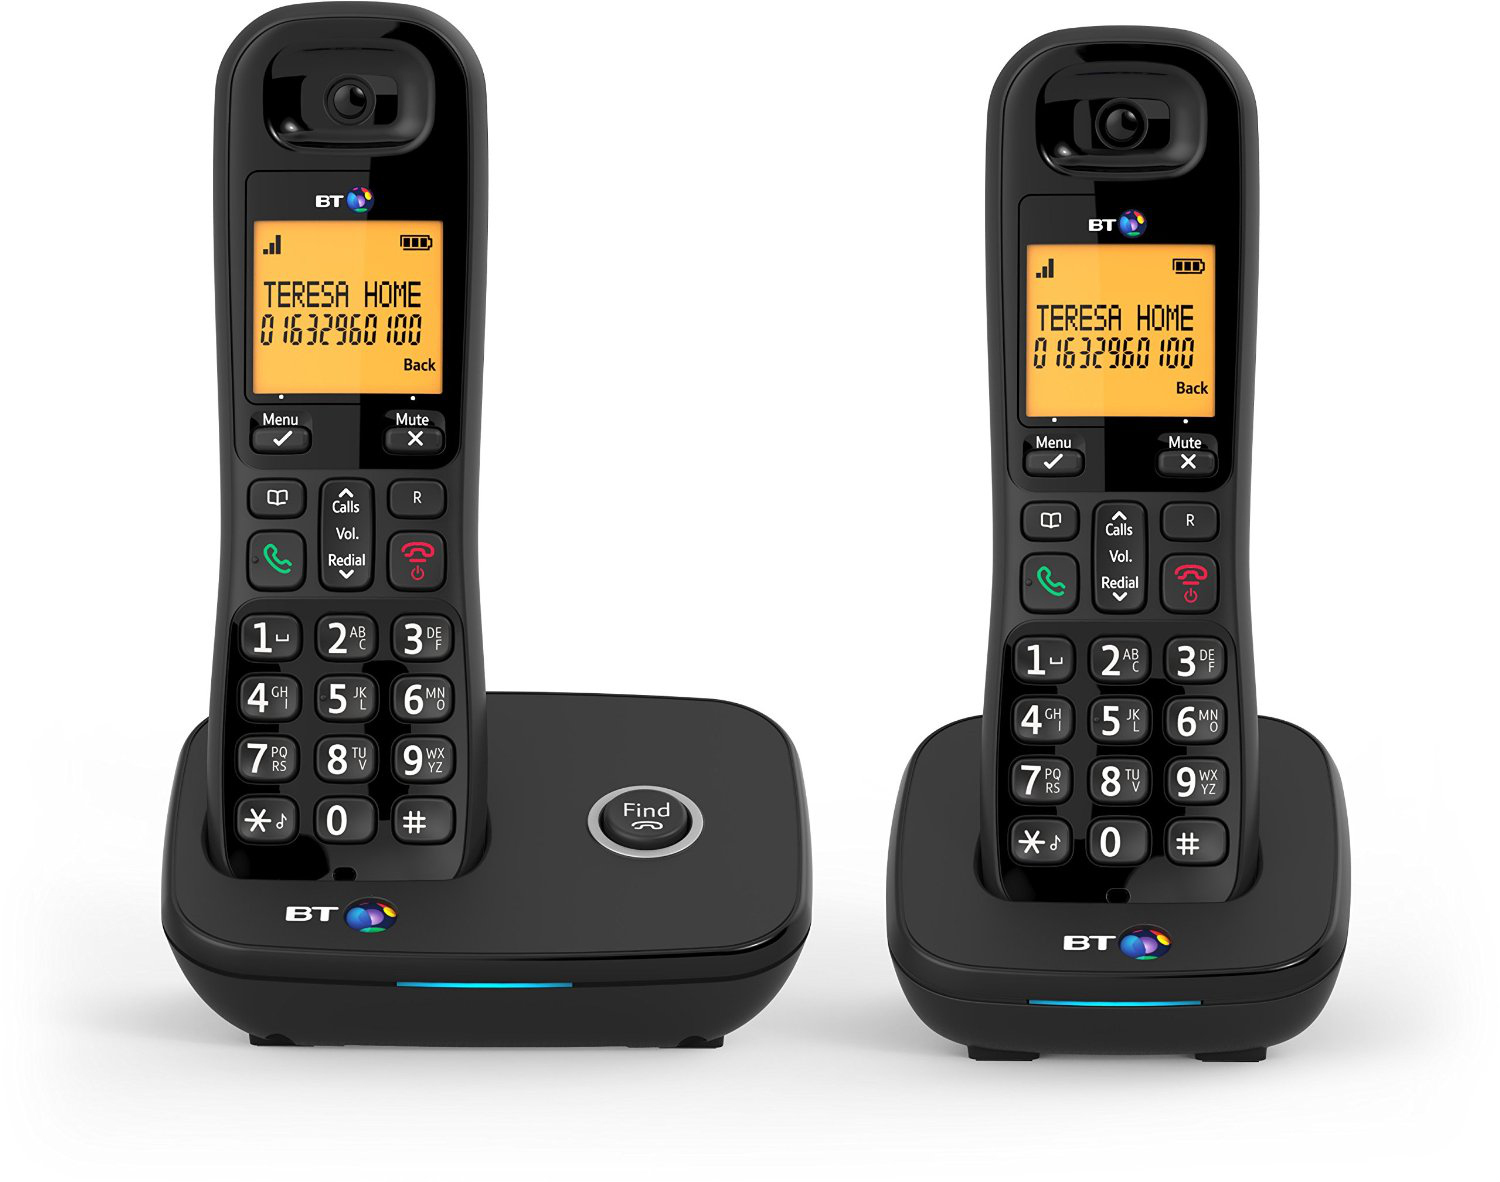 Bt 1200 Nuisance Call Blocker Cordless Phone With Do Not